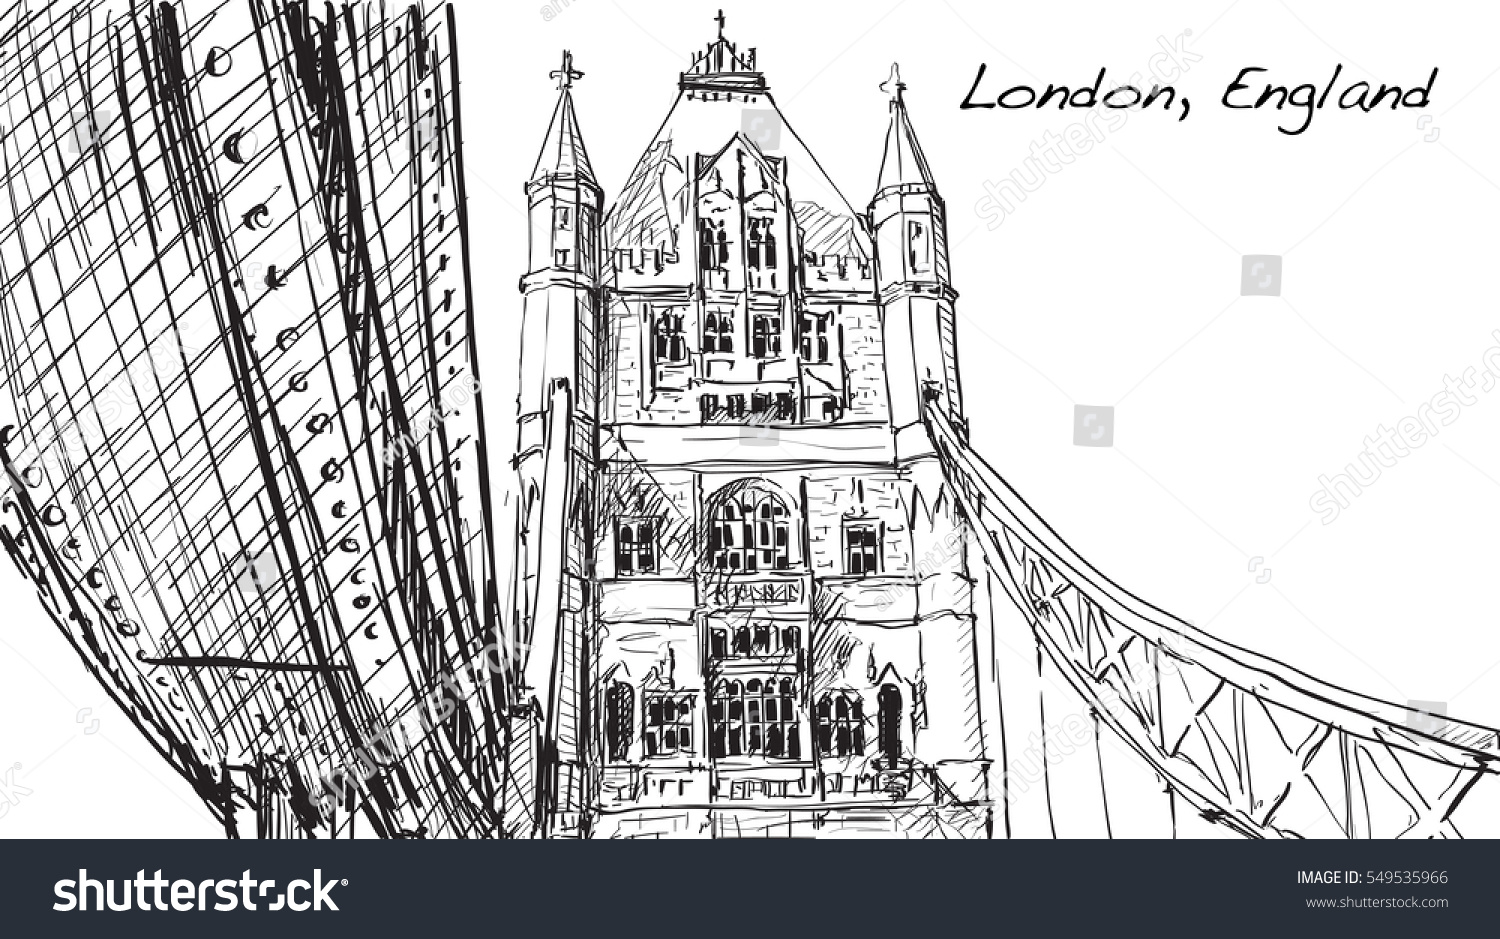 Sketch Drawing In London England Show Tower Bridge Illustration